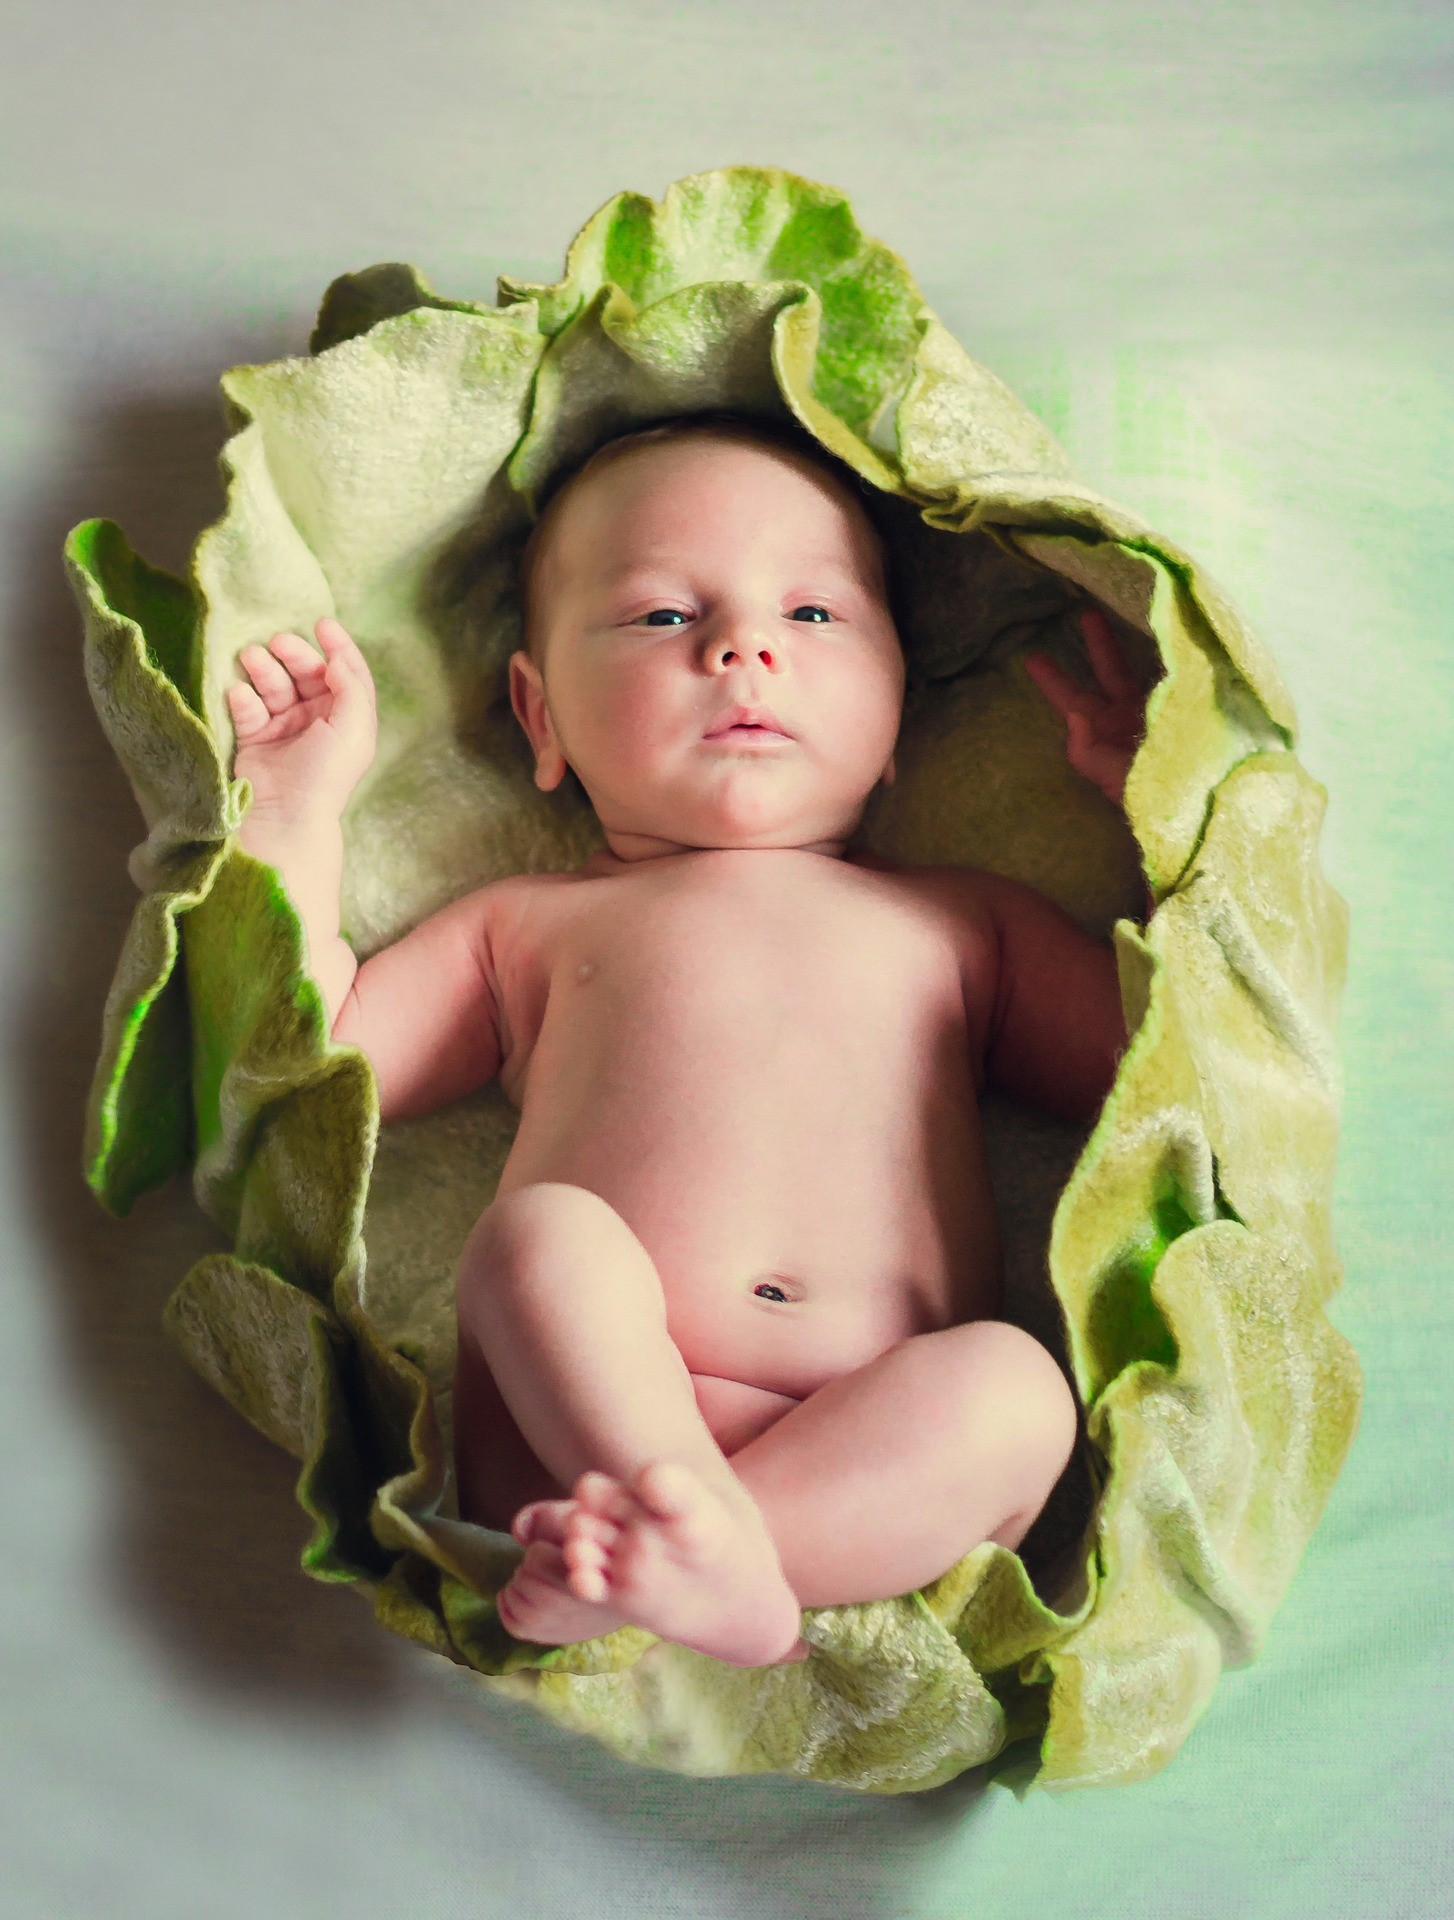 Newborn wrapped in a blanket that looks like lettuce